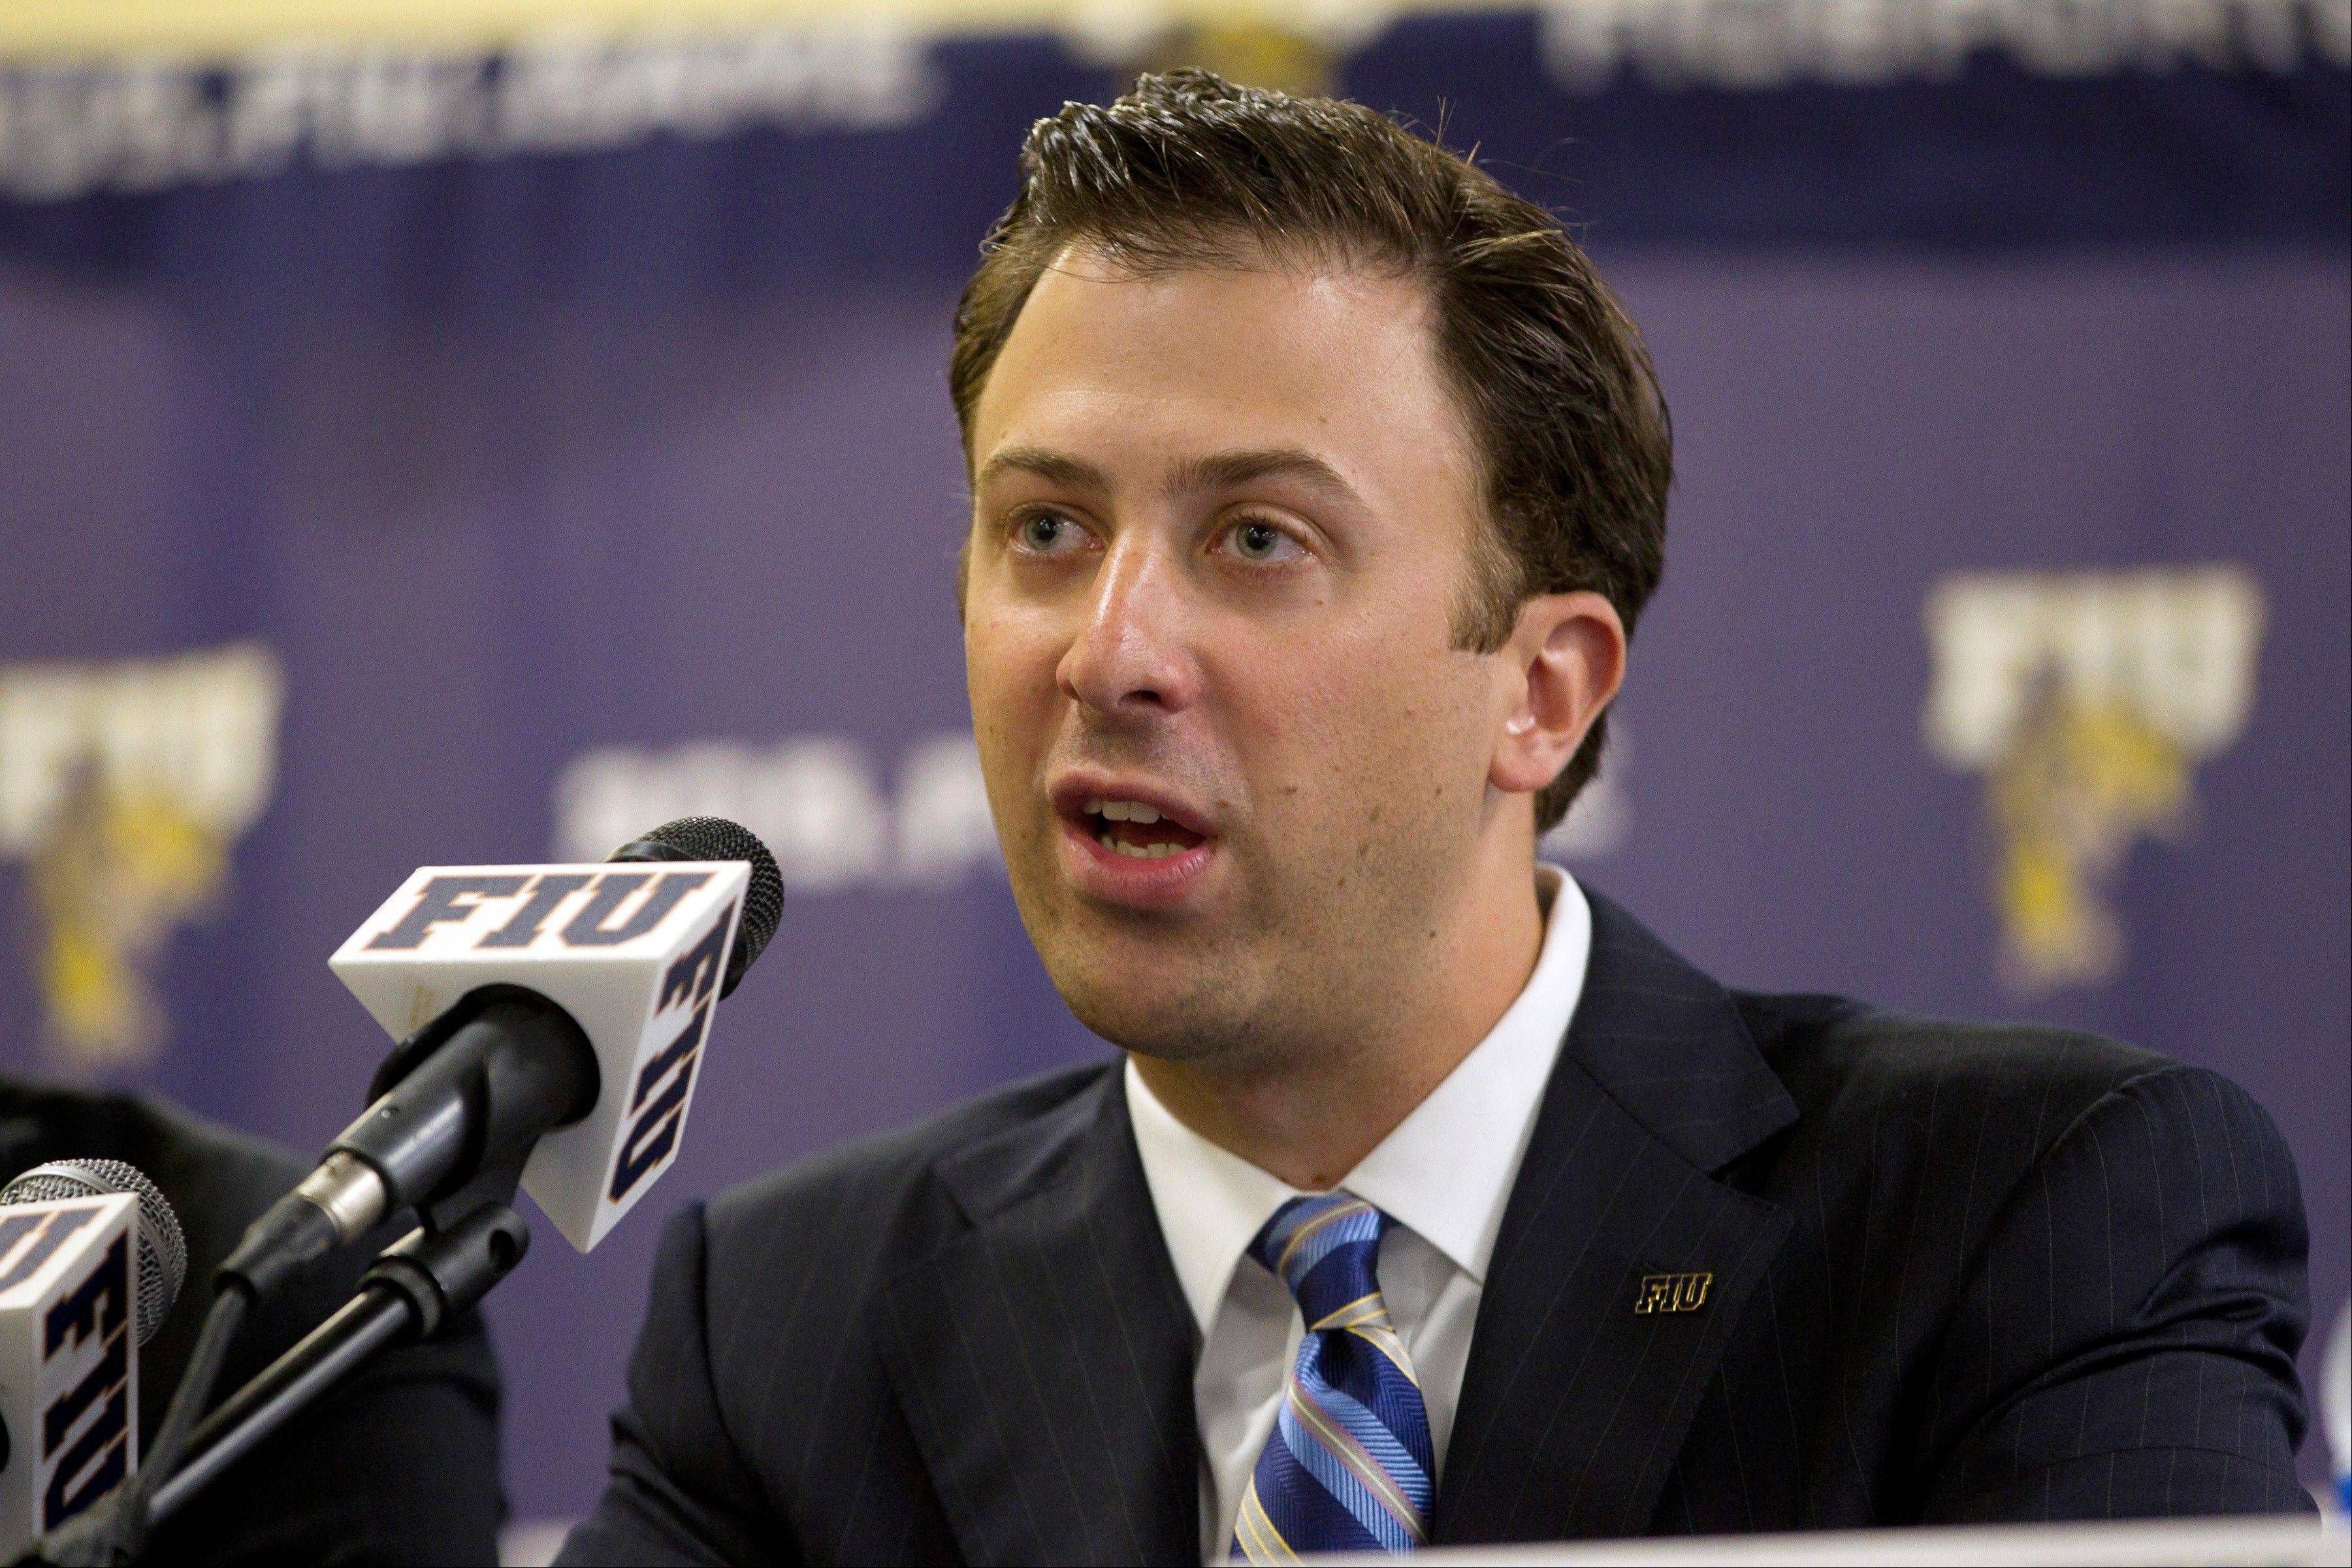 FILE - In this April 16, 2012 file photo, Richard Pitino talks to the media during a press conference in Miami. Minnesota is in advanced discussions with Richard Pitino, the son of Louisville coach Rick Pitino, to take over for Tubby Smith. Two people with knowledge of the discussions say Pitino engaged in negotiations with Minnesota officials on Wednesday, April 3, 2013. The people requested anonymity because the deal has not been formally completed. In his lone season at Florida International, Pitino led the Panthers to an 18-14 record, the school's first winning season in 13 years. (AP Photo/J Pat Carter, File)